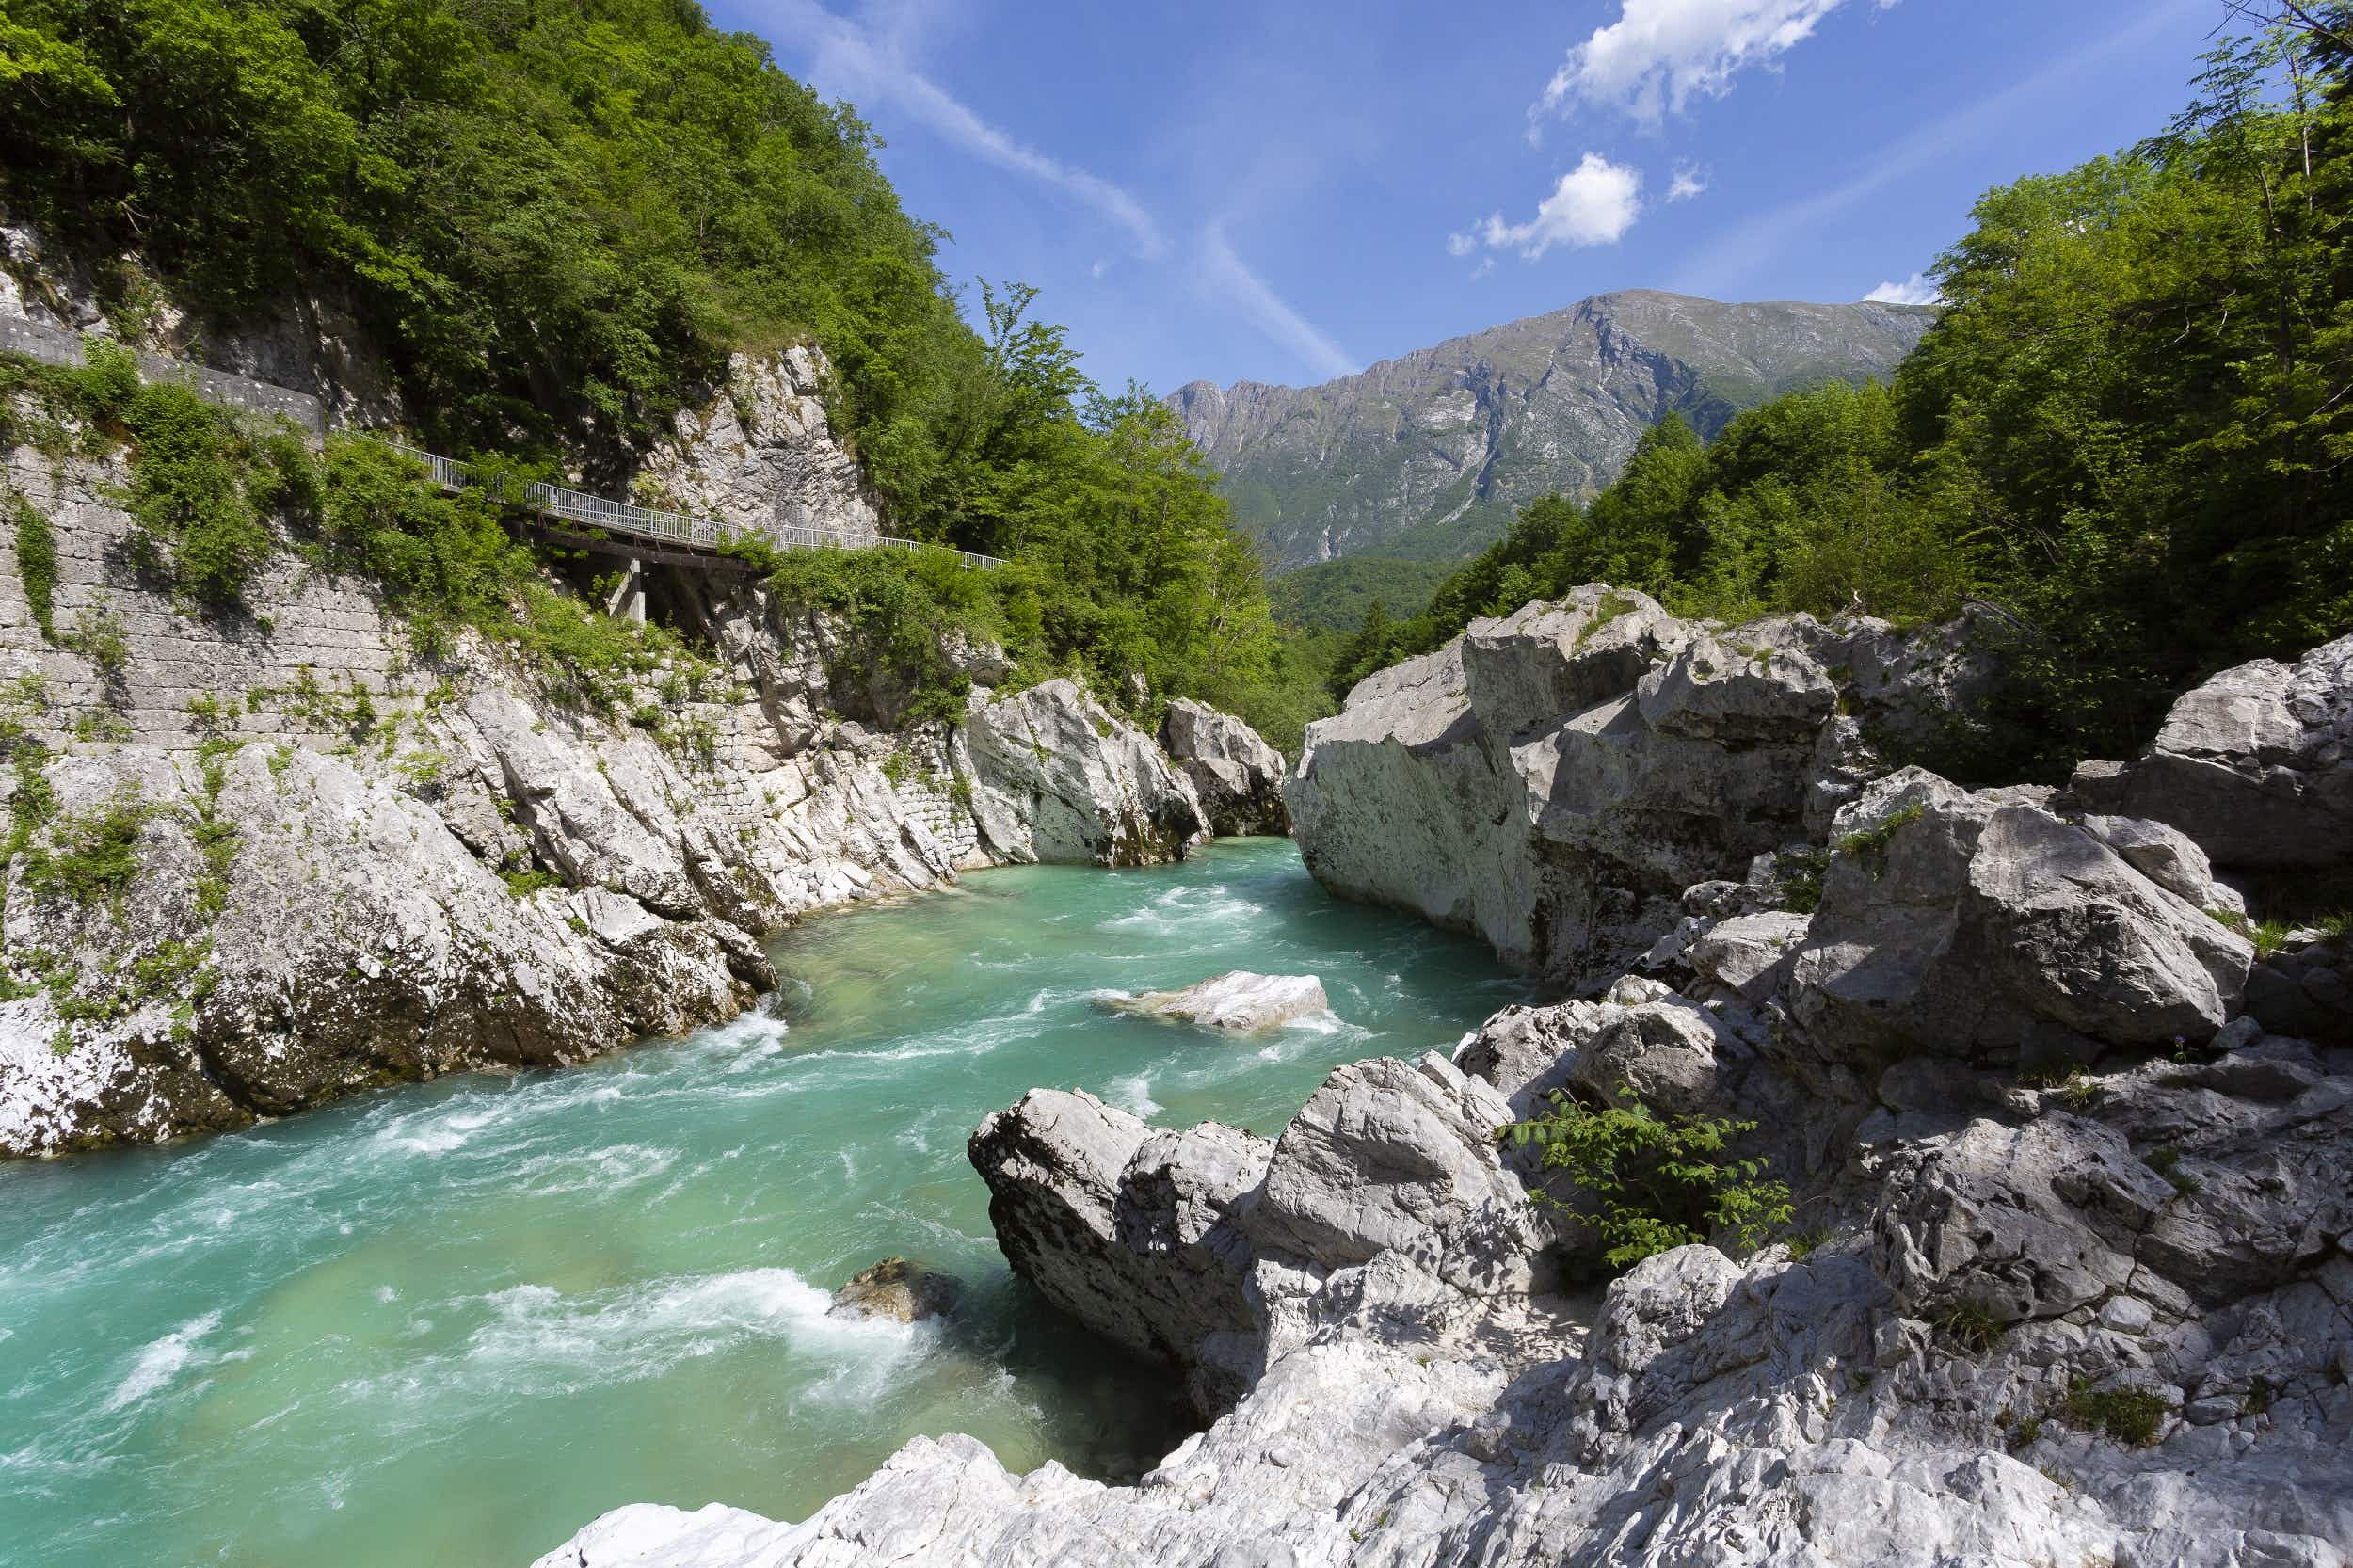 This new hiking route follows a WWI front line